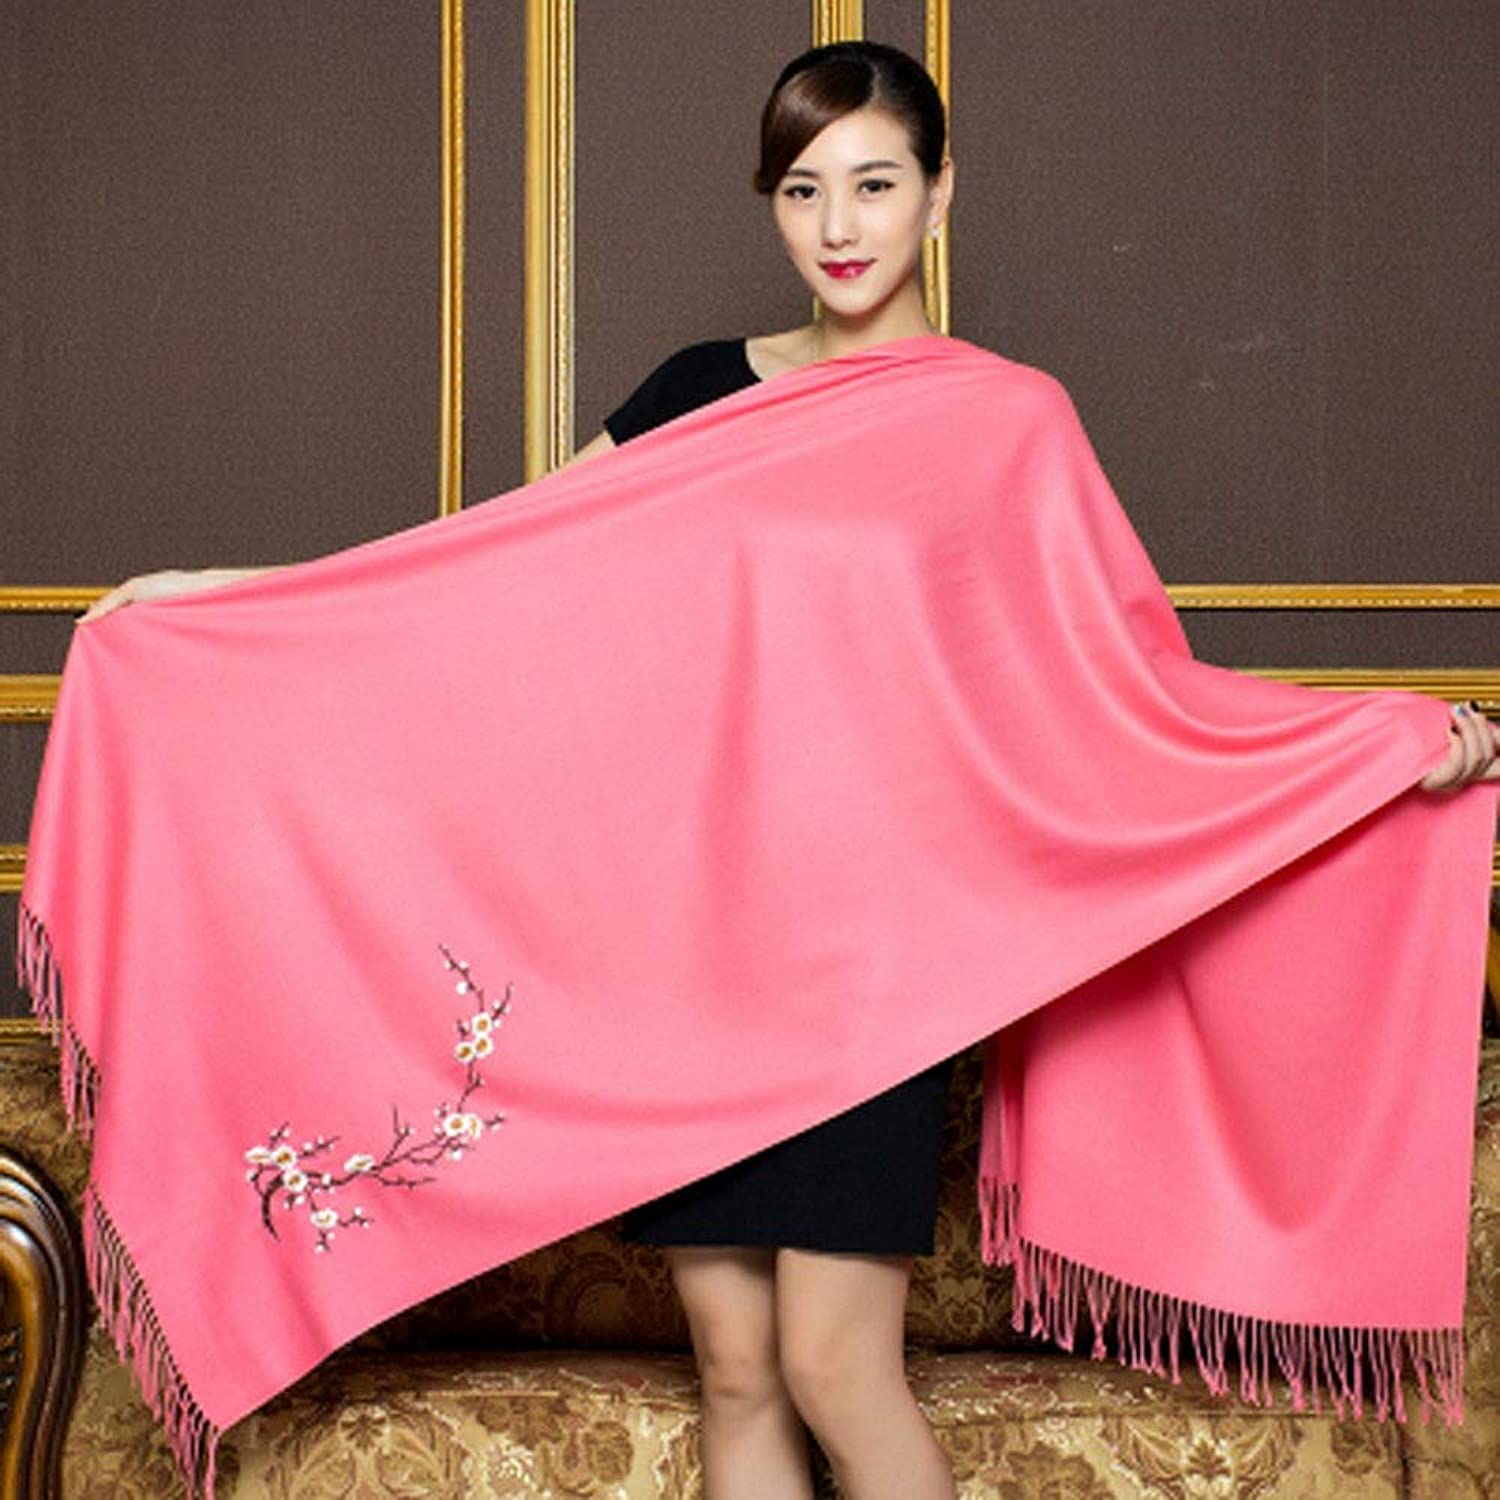 AINIYF Pretty Gift Box Wrapped Cashmere Pashmina Scarf Shawl Fashion Warm Oversized Wool Wrap Shawl Stole for Women 78.7x27.56inches (color   Pink)